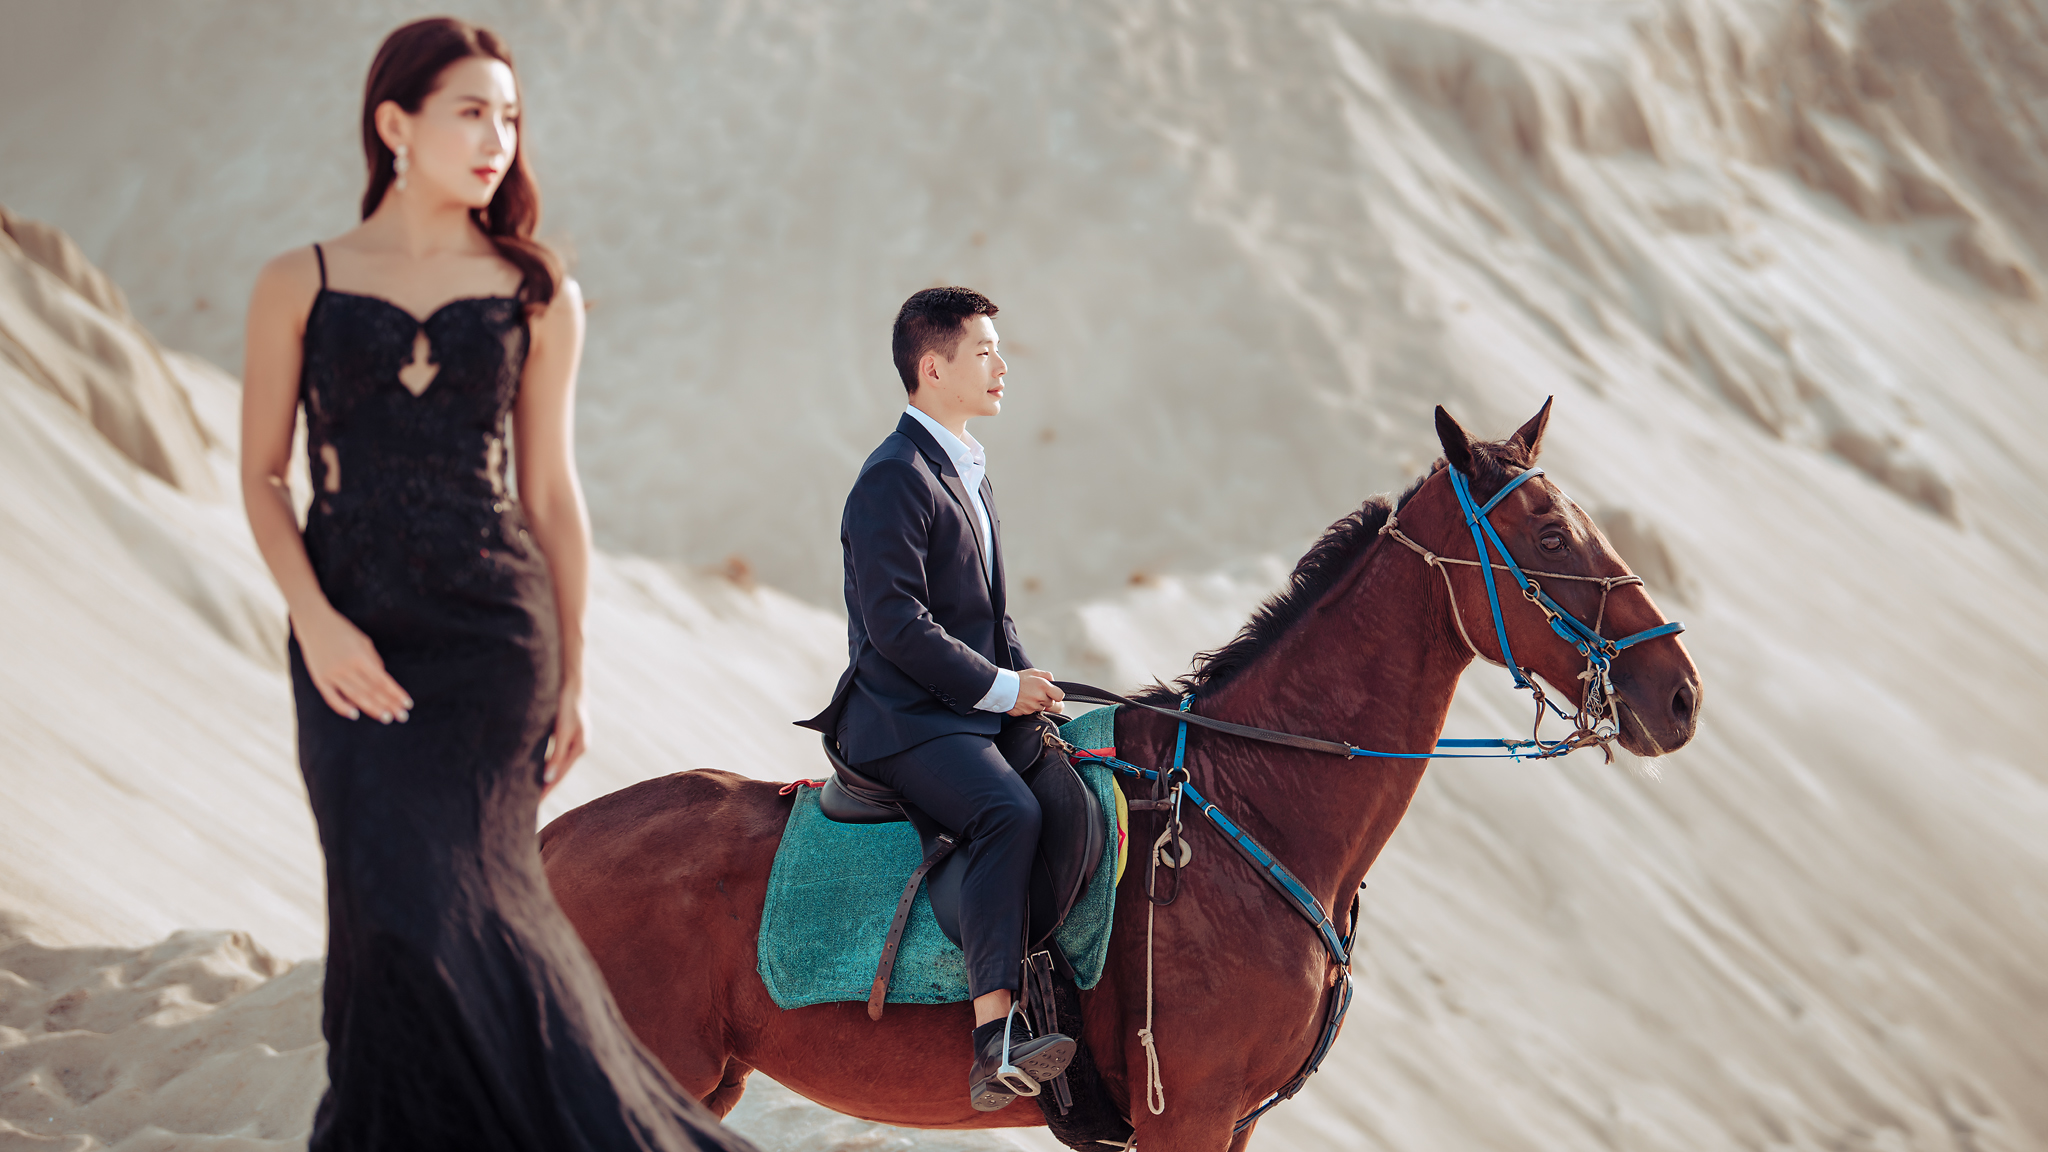 Engagement photo of groom on horse and bride in black cocktail dress by Edwin Tan Photography